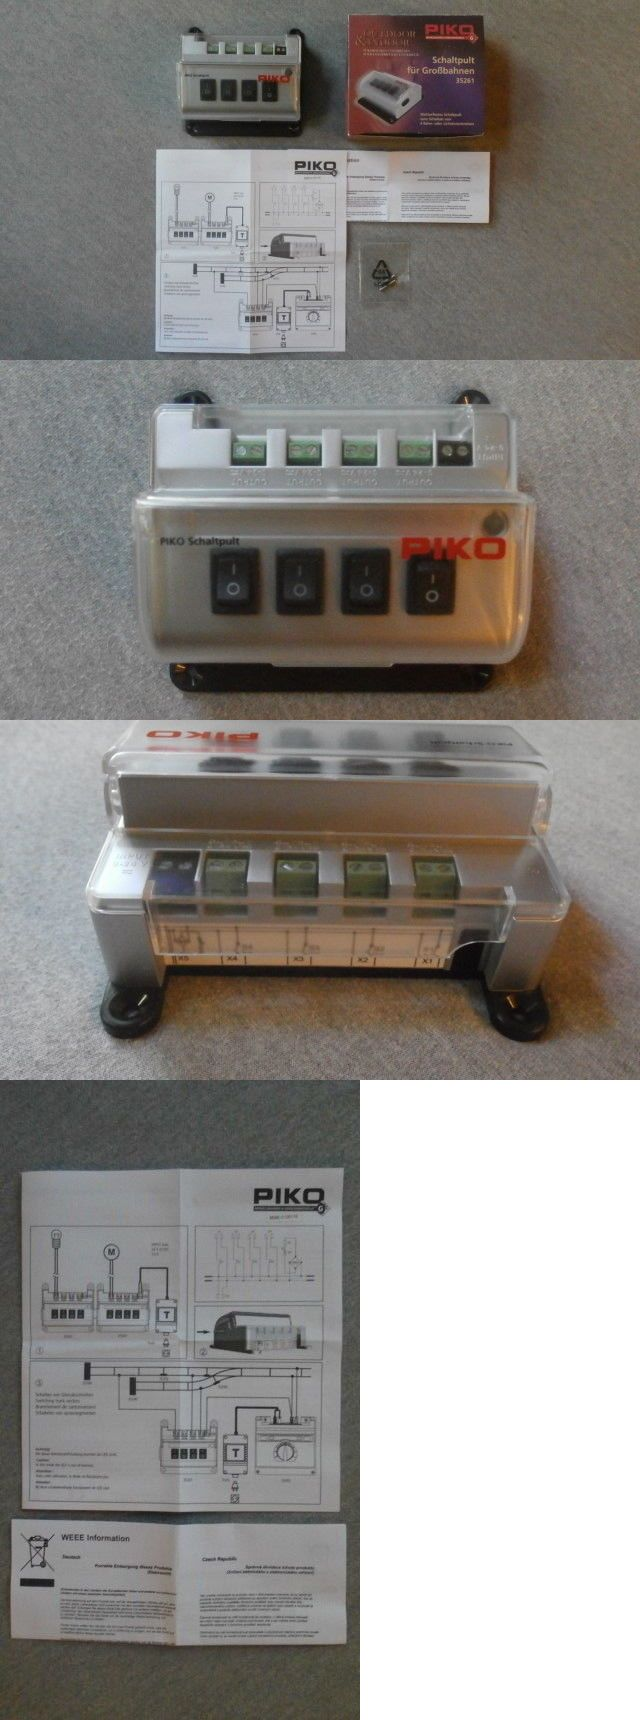 Other Railroad Power and Control 31109: Piko G Scale Weather-Resistant Switch Control Box #35261 -> BUY IT NOW ONLY: $64.99 on eBay!